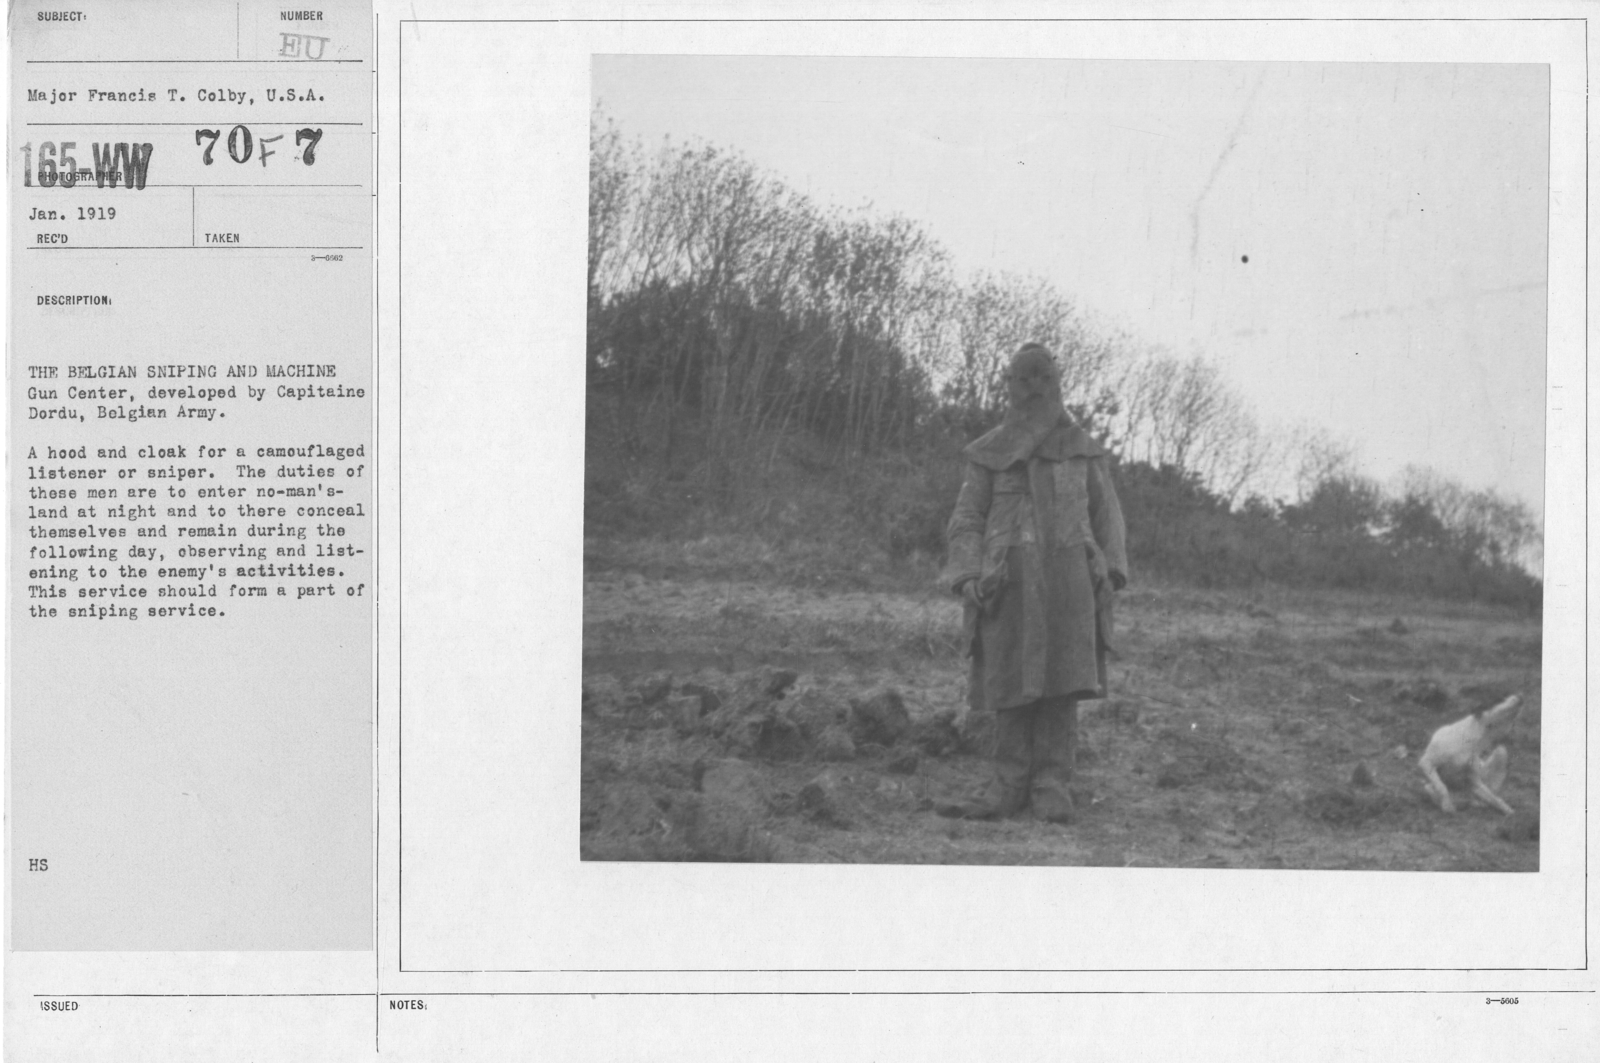 Camouflage - Scouts - The Belgian Sniping and Machine Gun Center, developed by Capitaine Dordu, Belgian Army. A hood and cloak for a camouflaged listener or sniper. The duties of these men are are to enter no-man's-land at night and to there conceal themselves and remain during the following day, observing and listening to the enemy's activities. This service should form a part of the sniping service